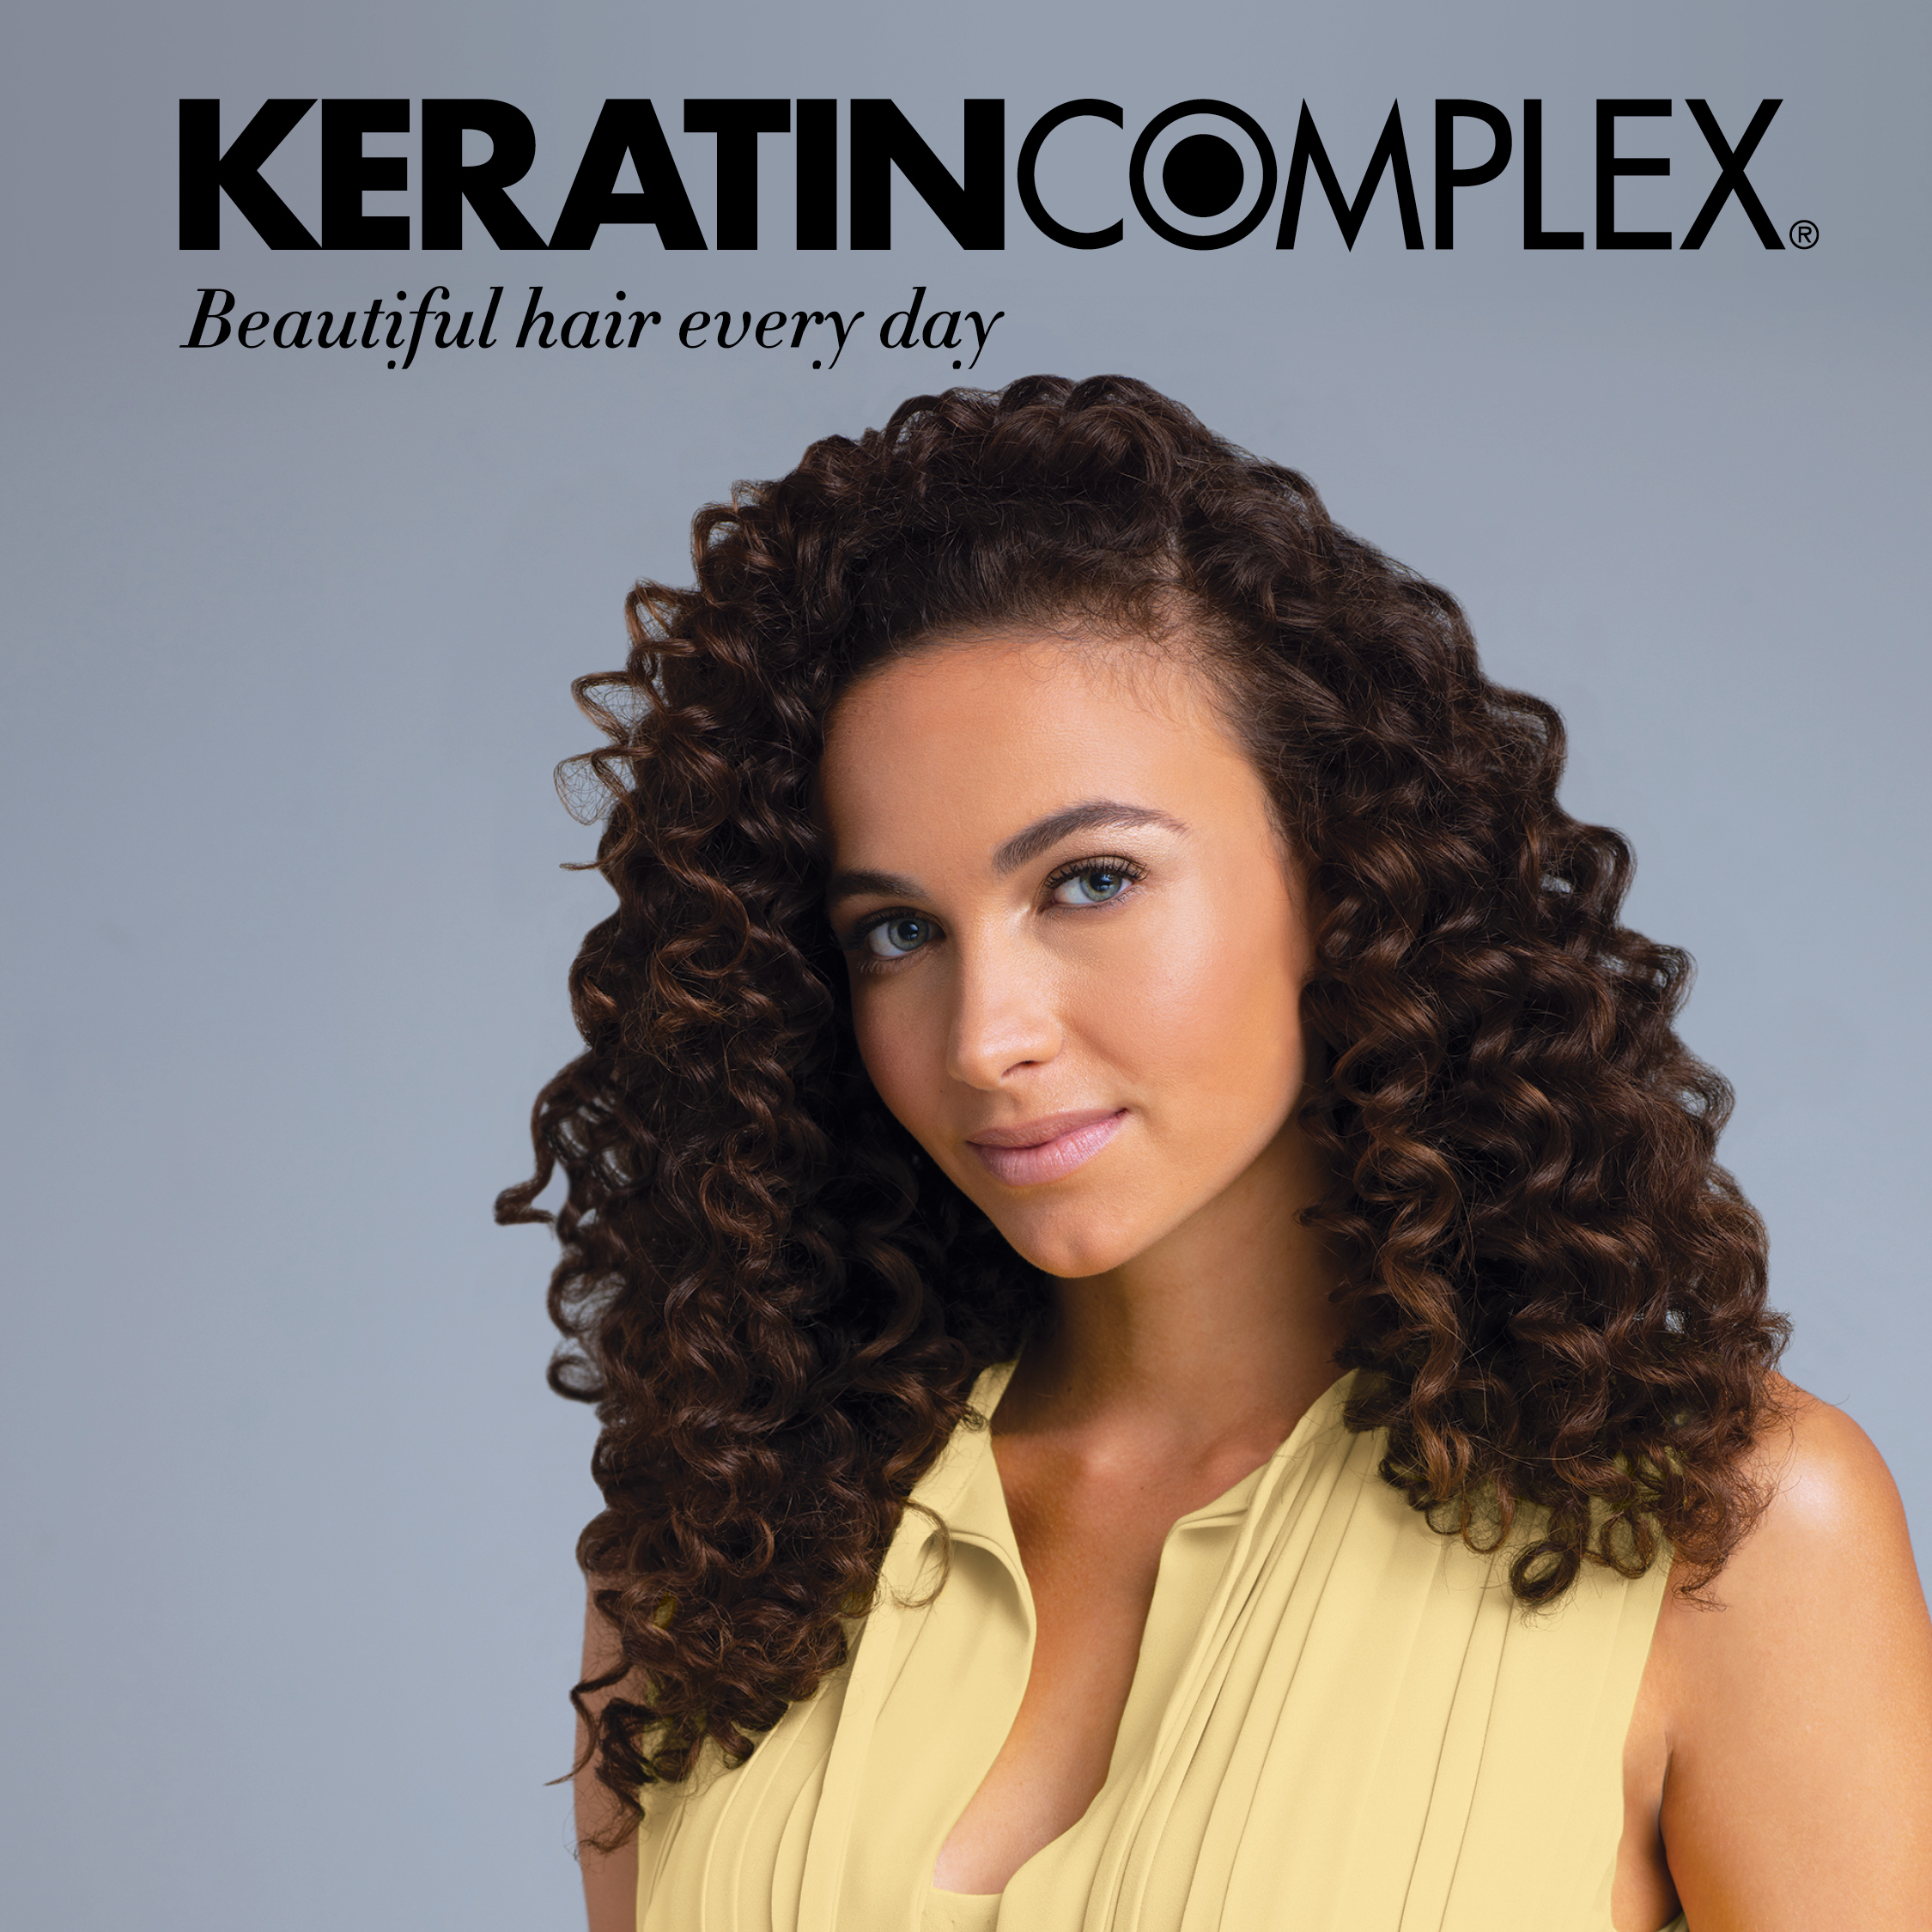 Keratin Complex Curly Model Poster